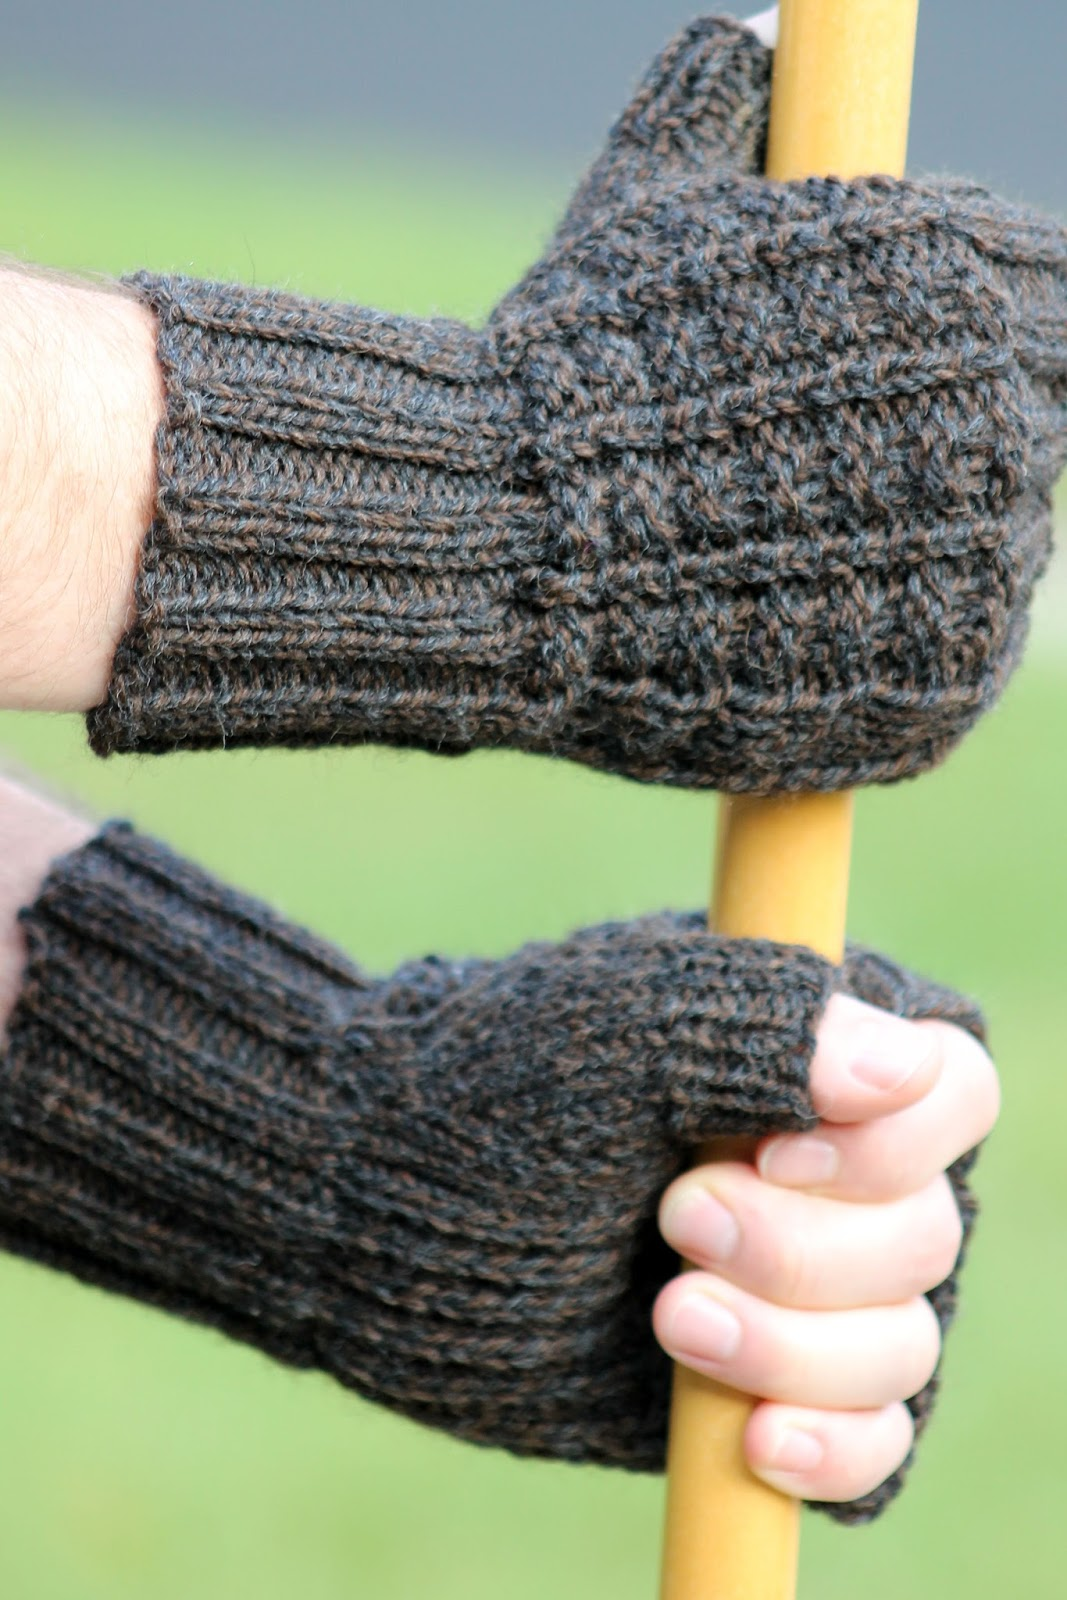 Fingerless Gloves Knitting Pattern Circular Needles Cool Inspiration Design